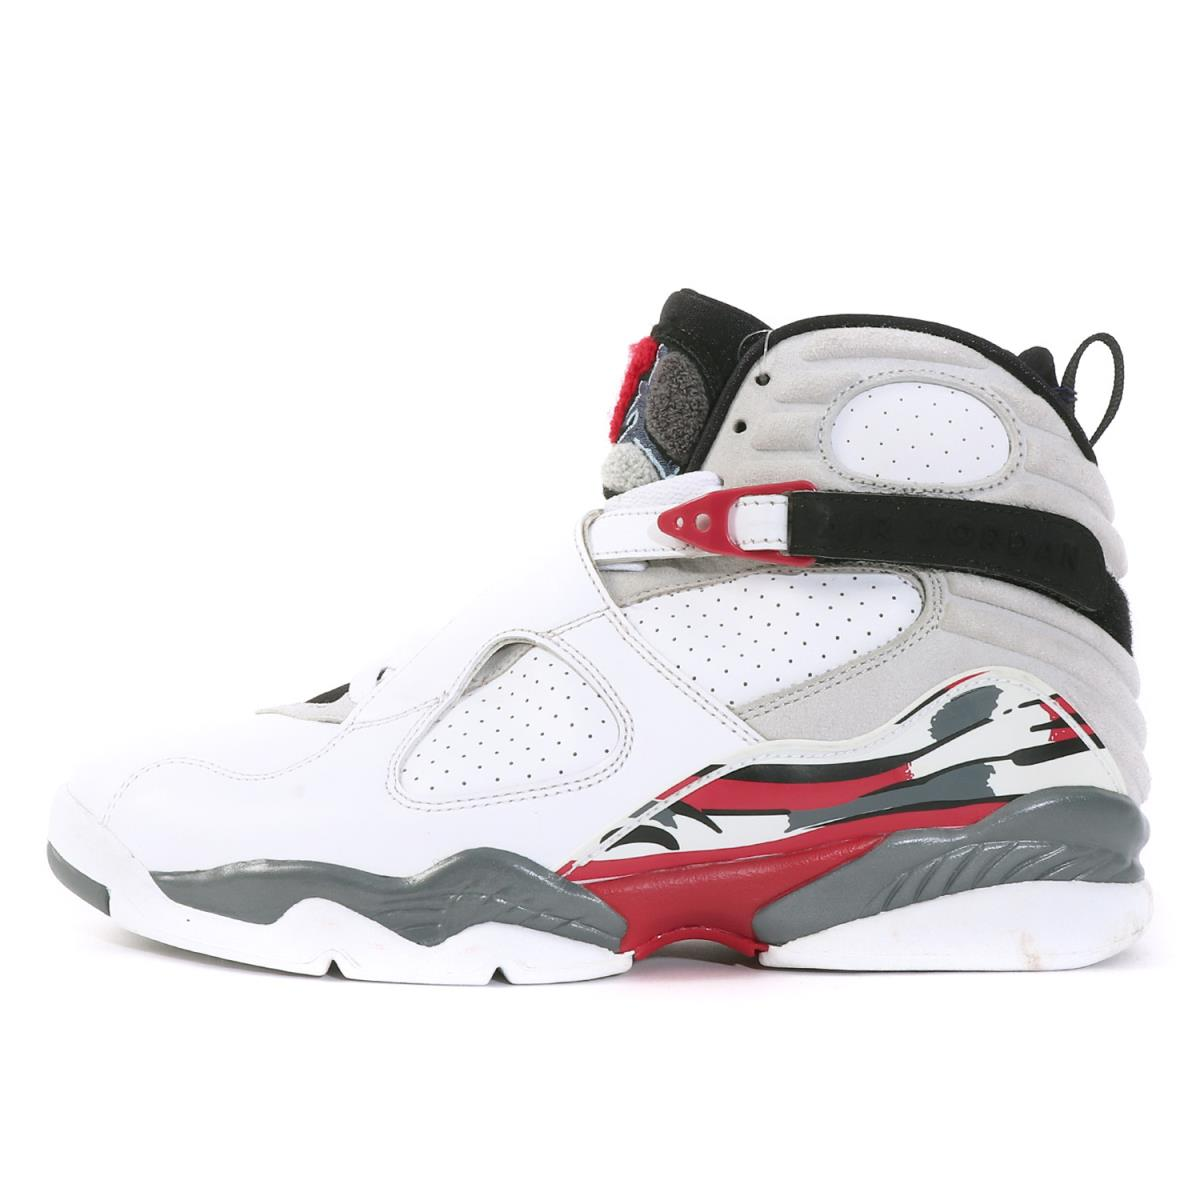 new styles f3b85 ab342 NIKE (Nike) AIR JORDAN 8 RETRO BUGS BUNNY (  305,381-103 made in 2013) white  X toe roux red US10(28cm)